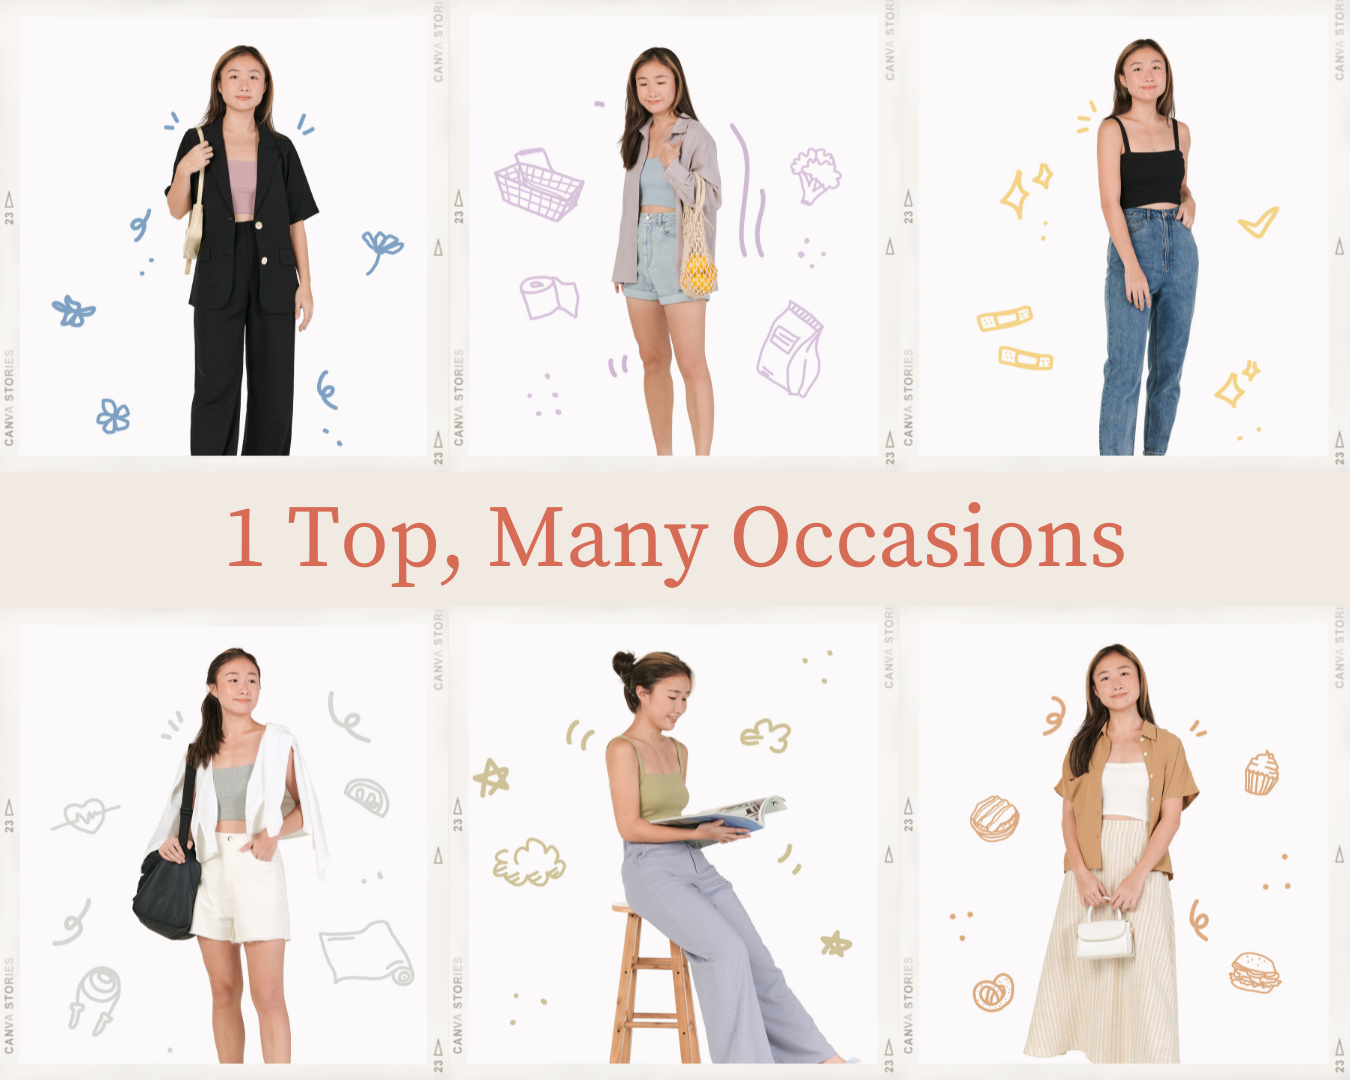 1 Top, Many Occasions!